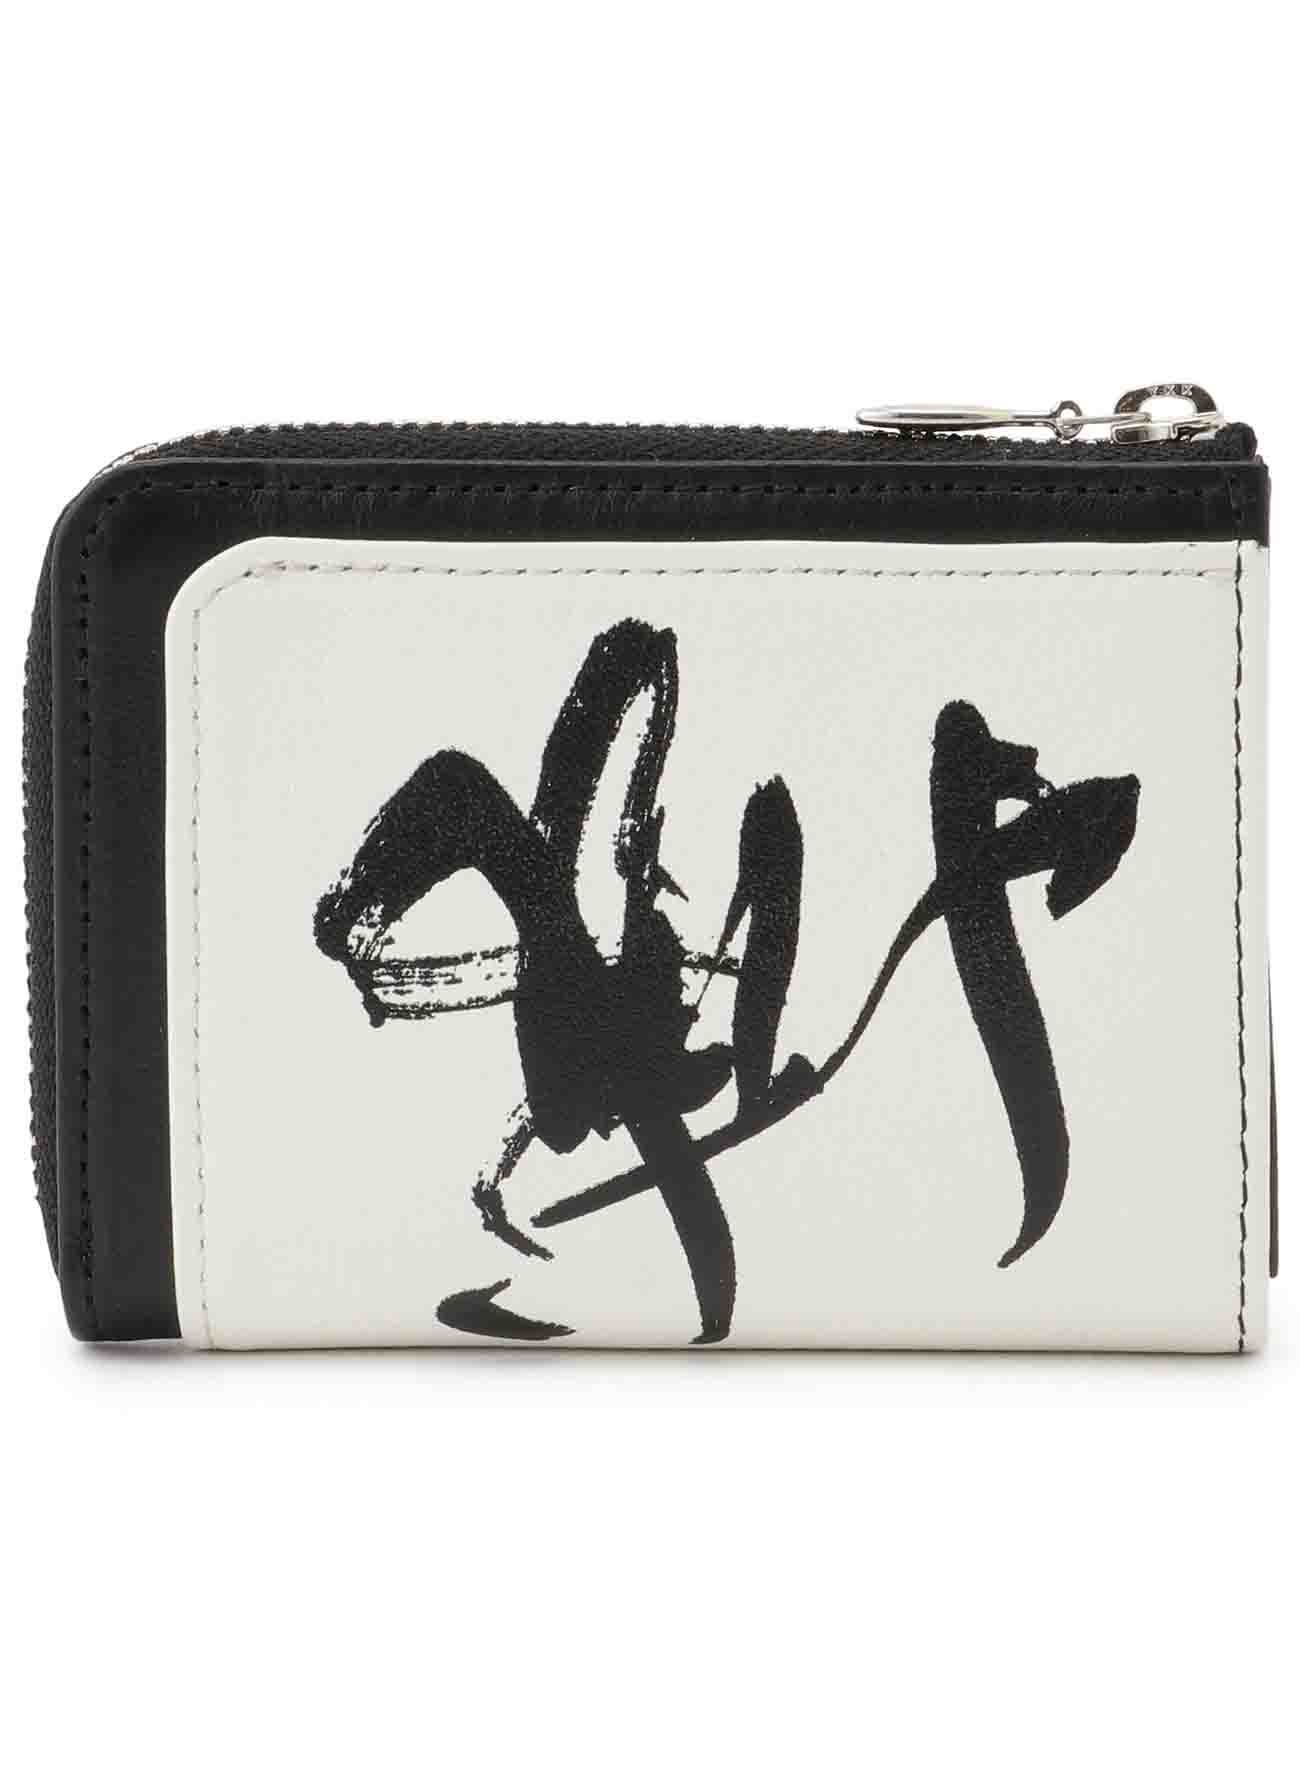 CALLIGRAPHY PRINT LEATHER MINI WALLET